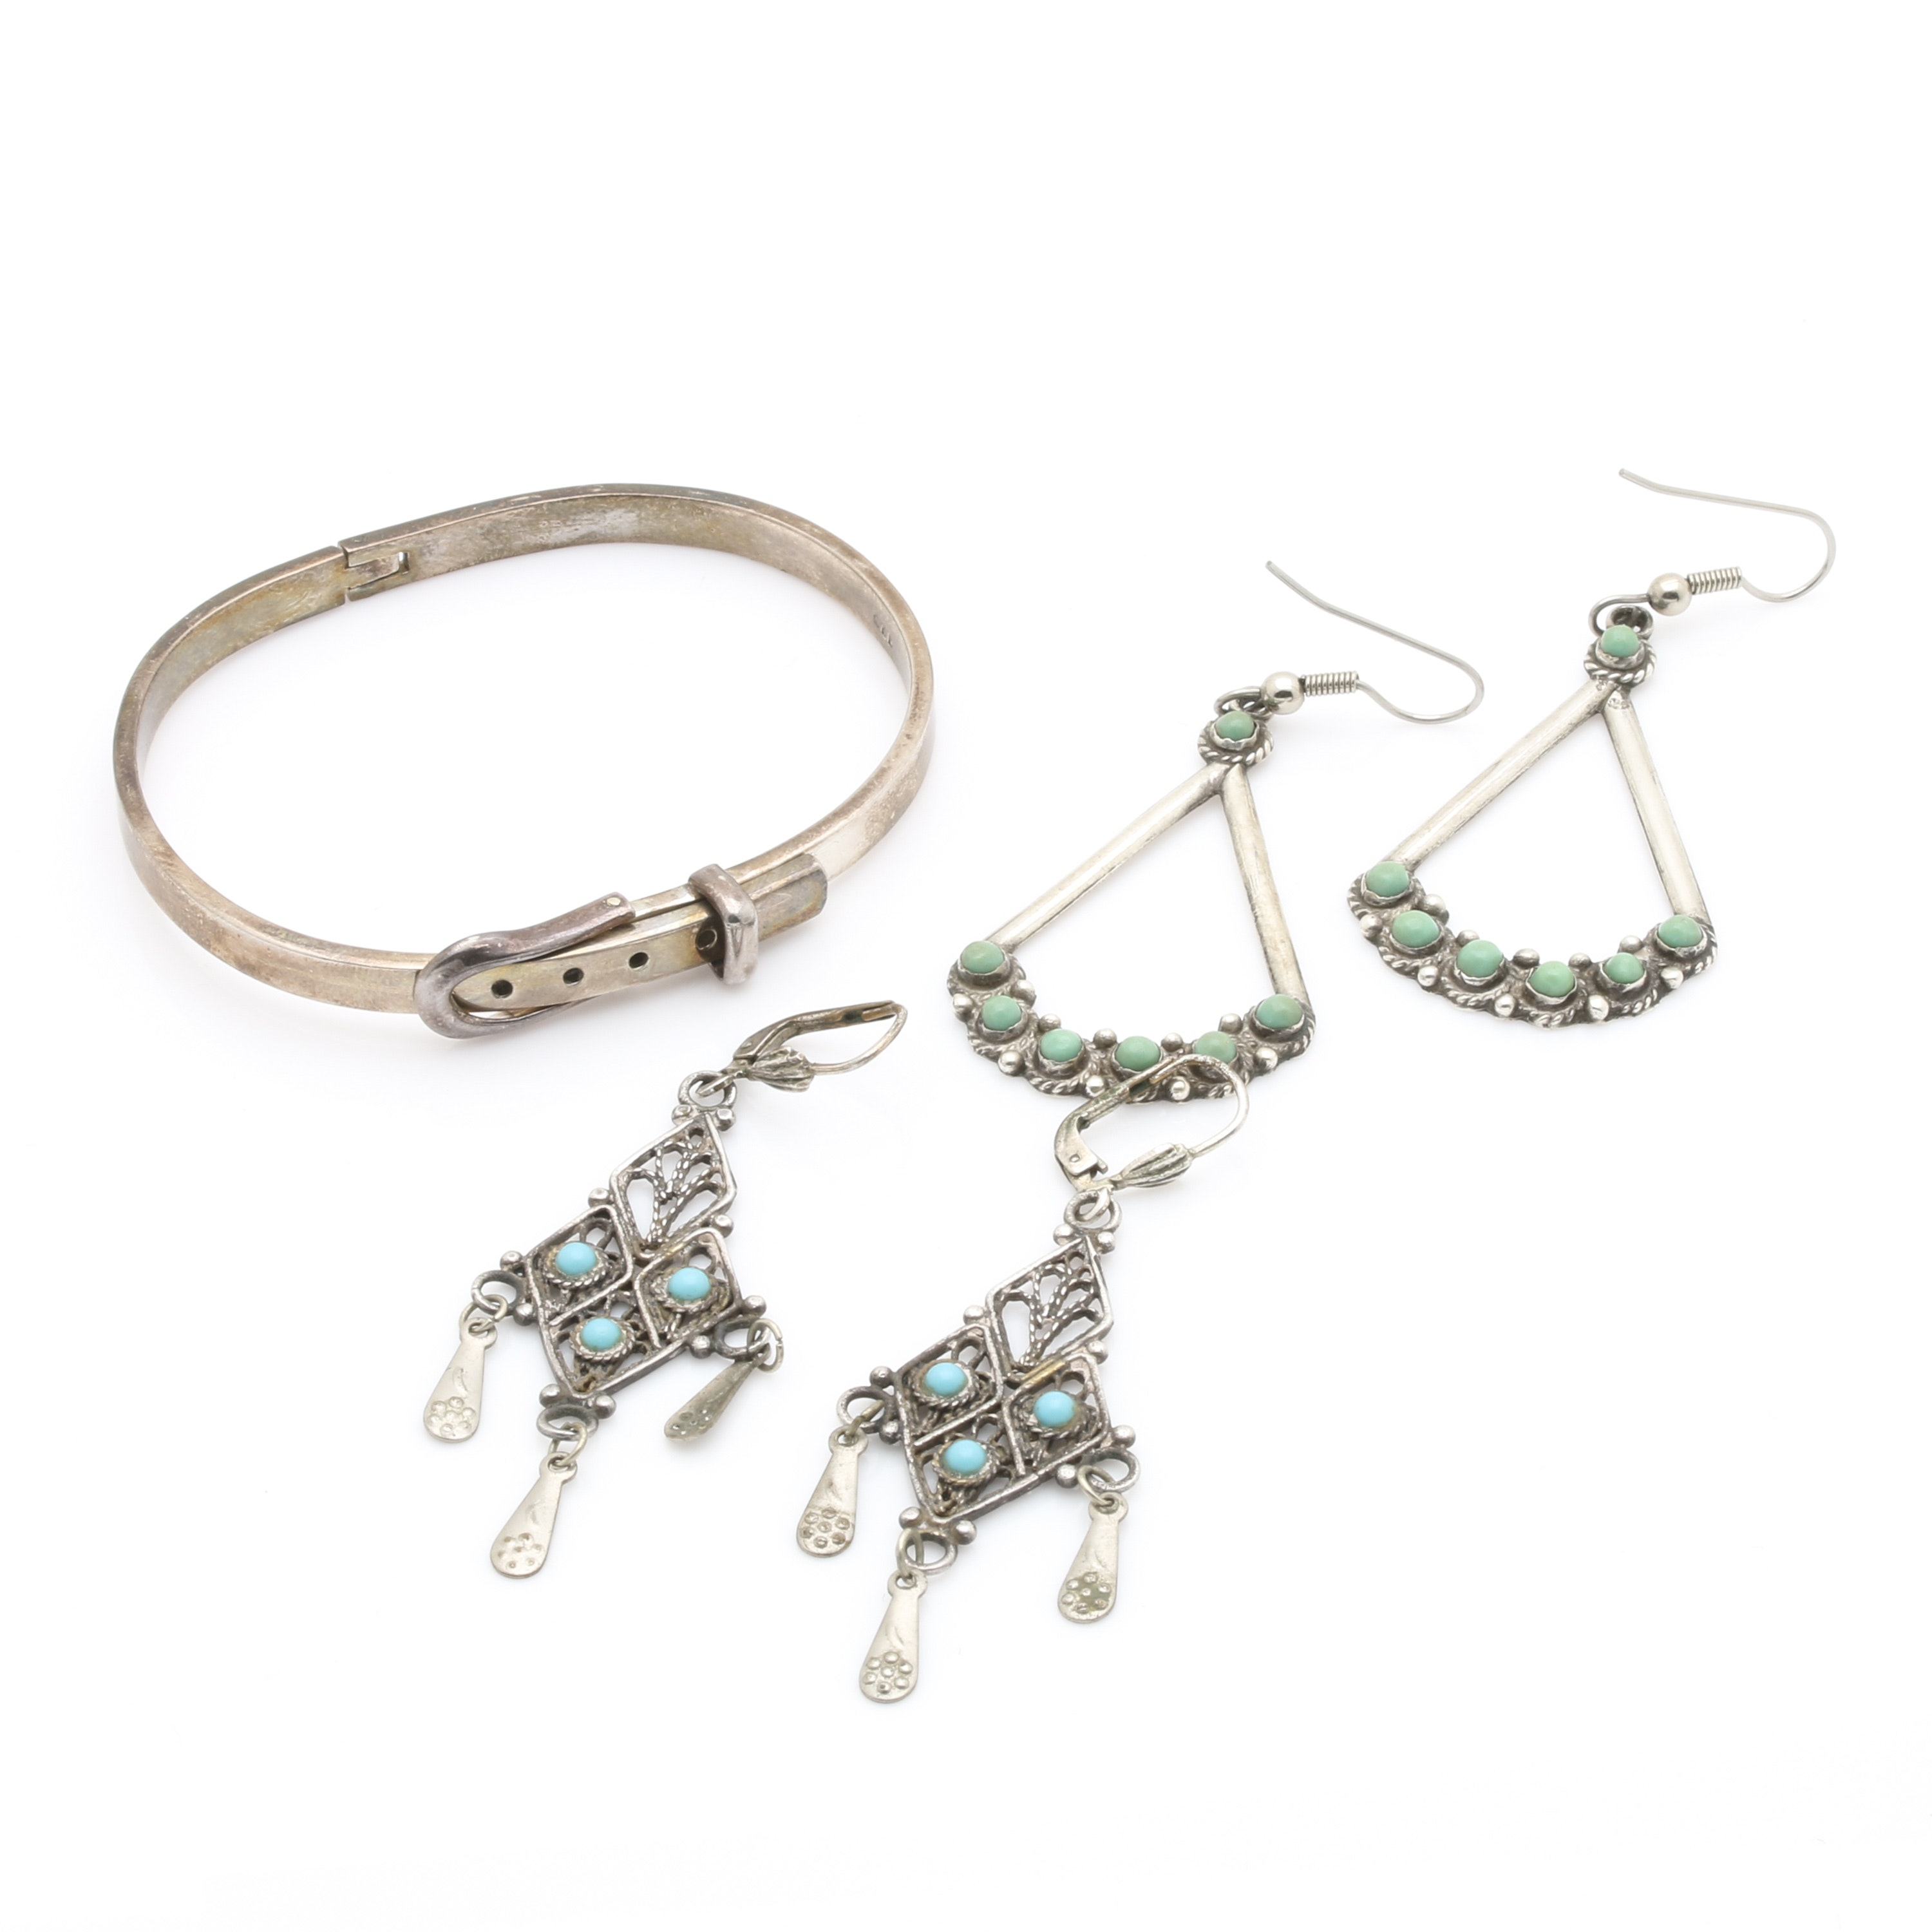 Sterling Silver Bracelet and Earrings With Turquoise Stones